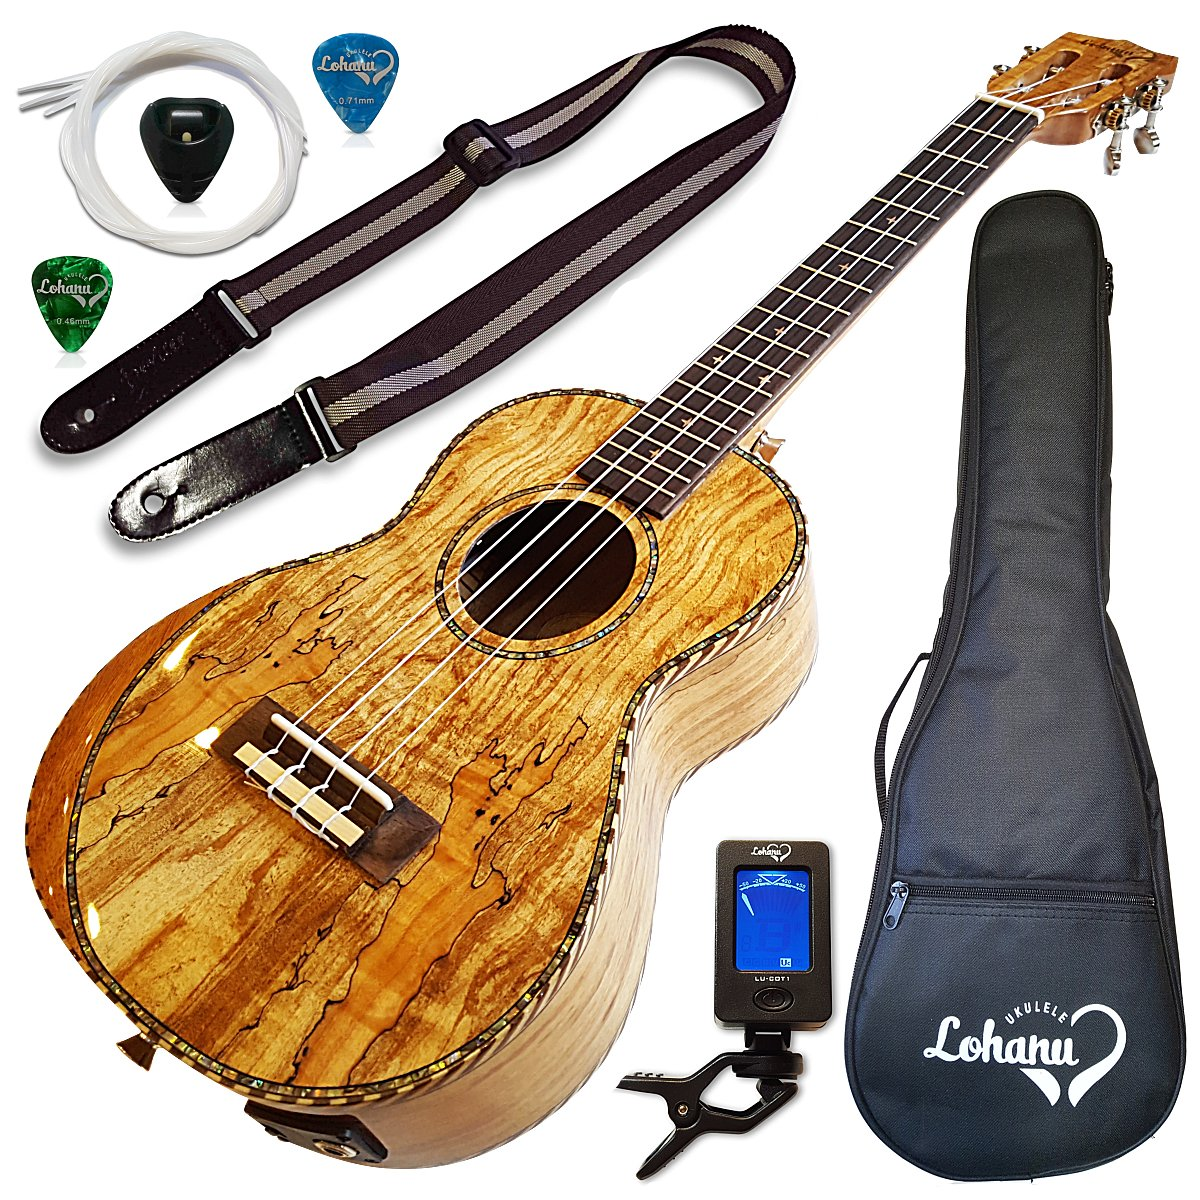 2. Lohanu Spalted Maple Finish With 3 Band Electric EQ Pickup